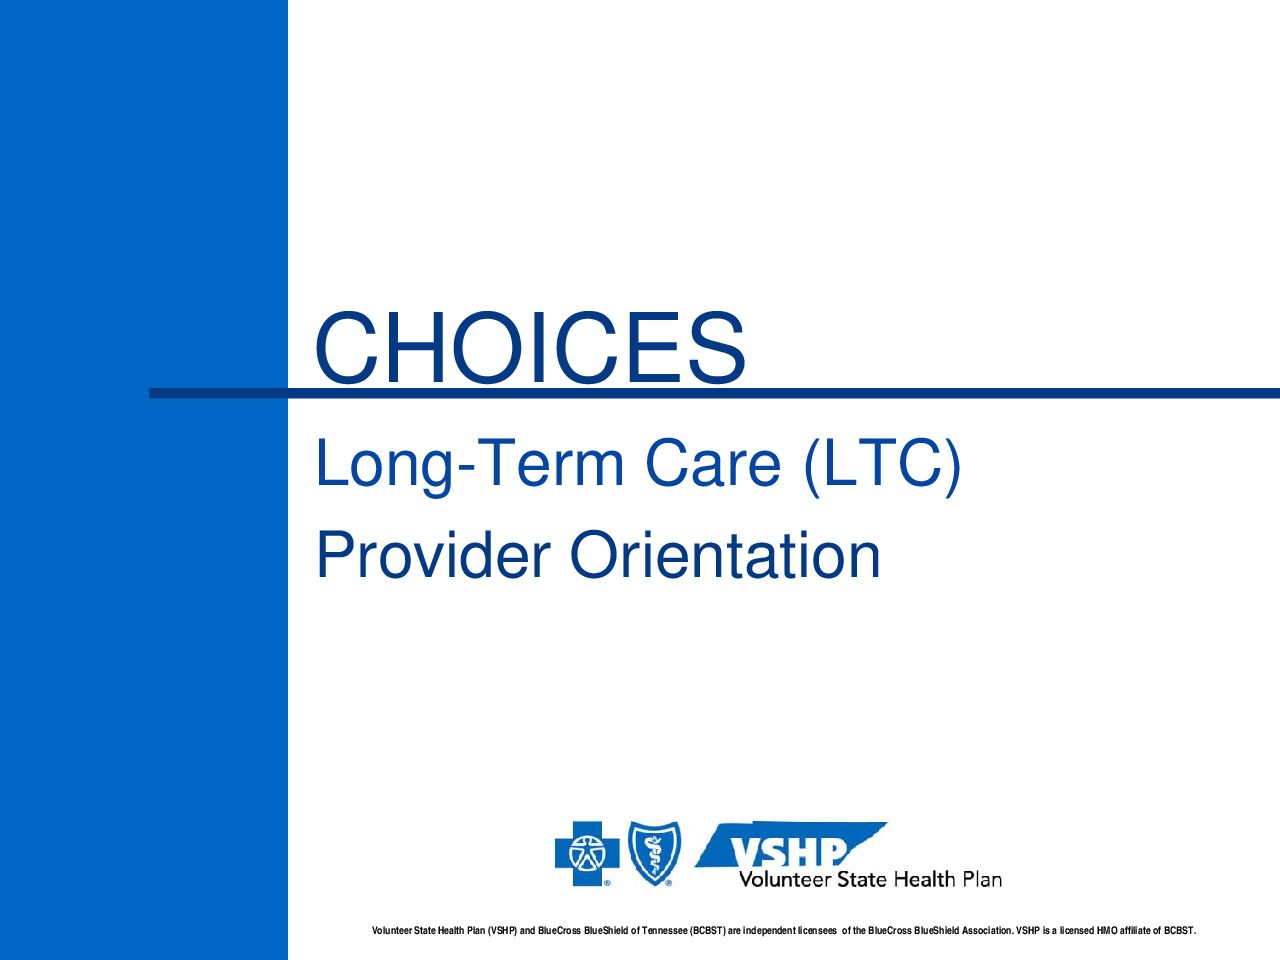 CHOICES Long-Term Care (LTC) Provider Orientation